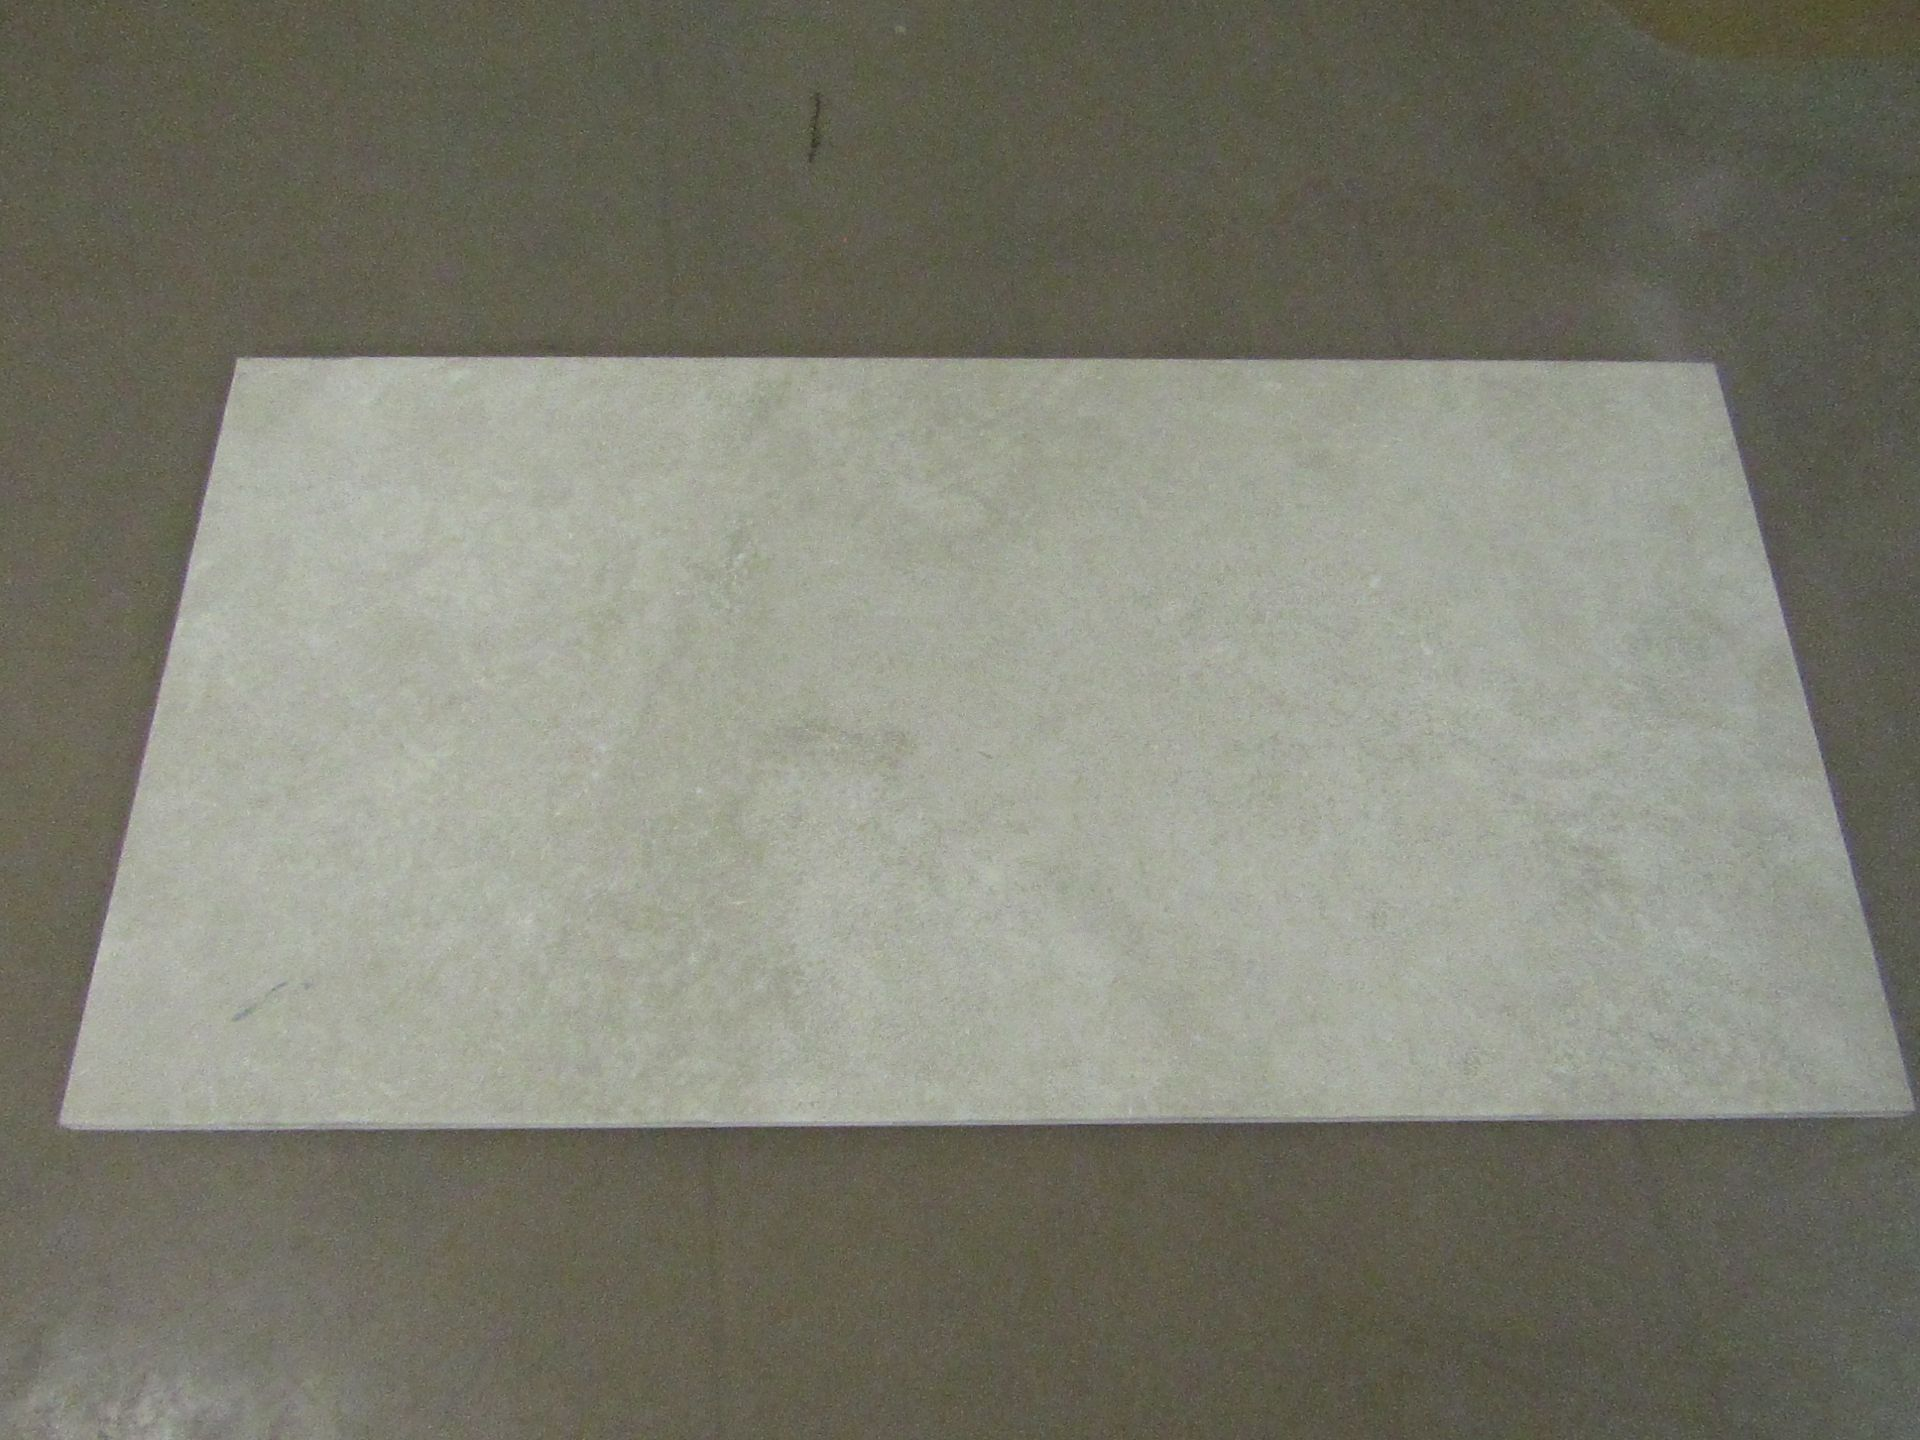 Pallet of 40x Packs of 5 Cambridge Old Stone textured 300x600 wall and Floor Tiles By Johnsons, New,